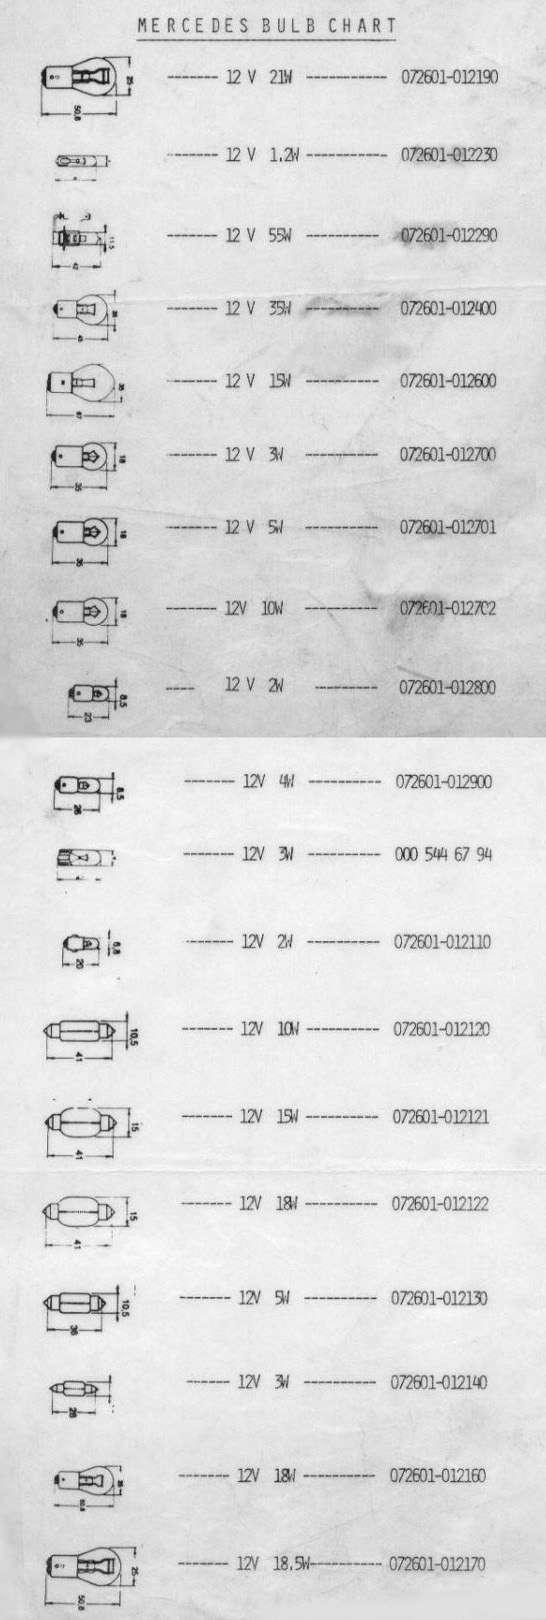 hight resolution of mercedes benz fog lamp bulb 072601 012600 is shown as 12v 15w fifth bulb down on the chart but the power rating should be 35w